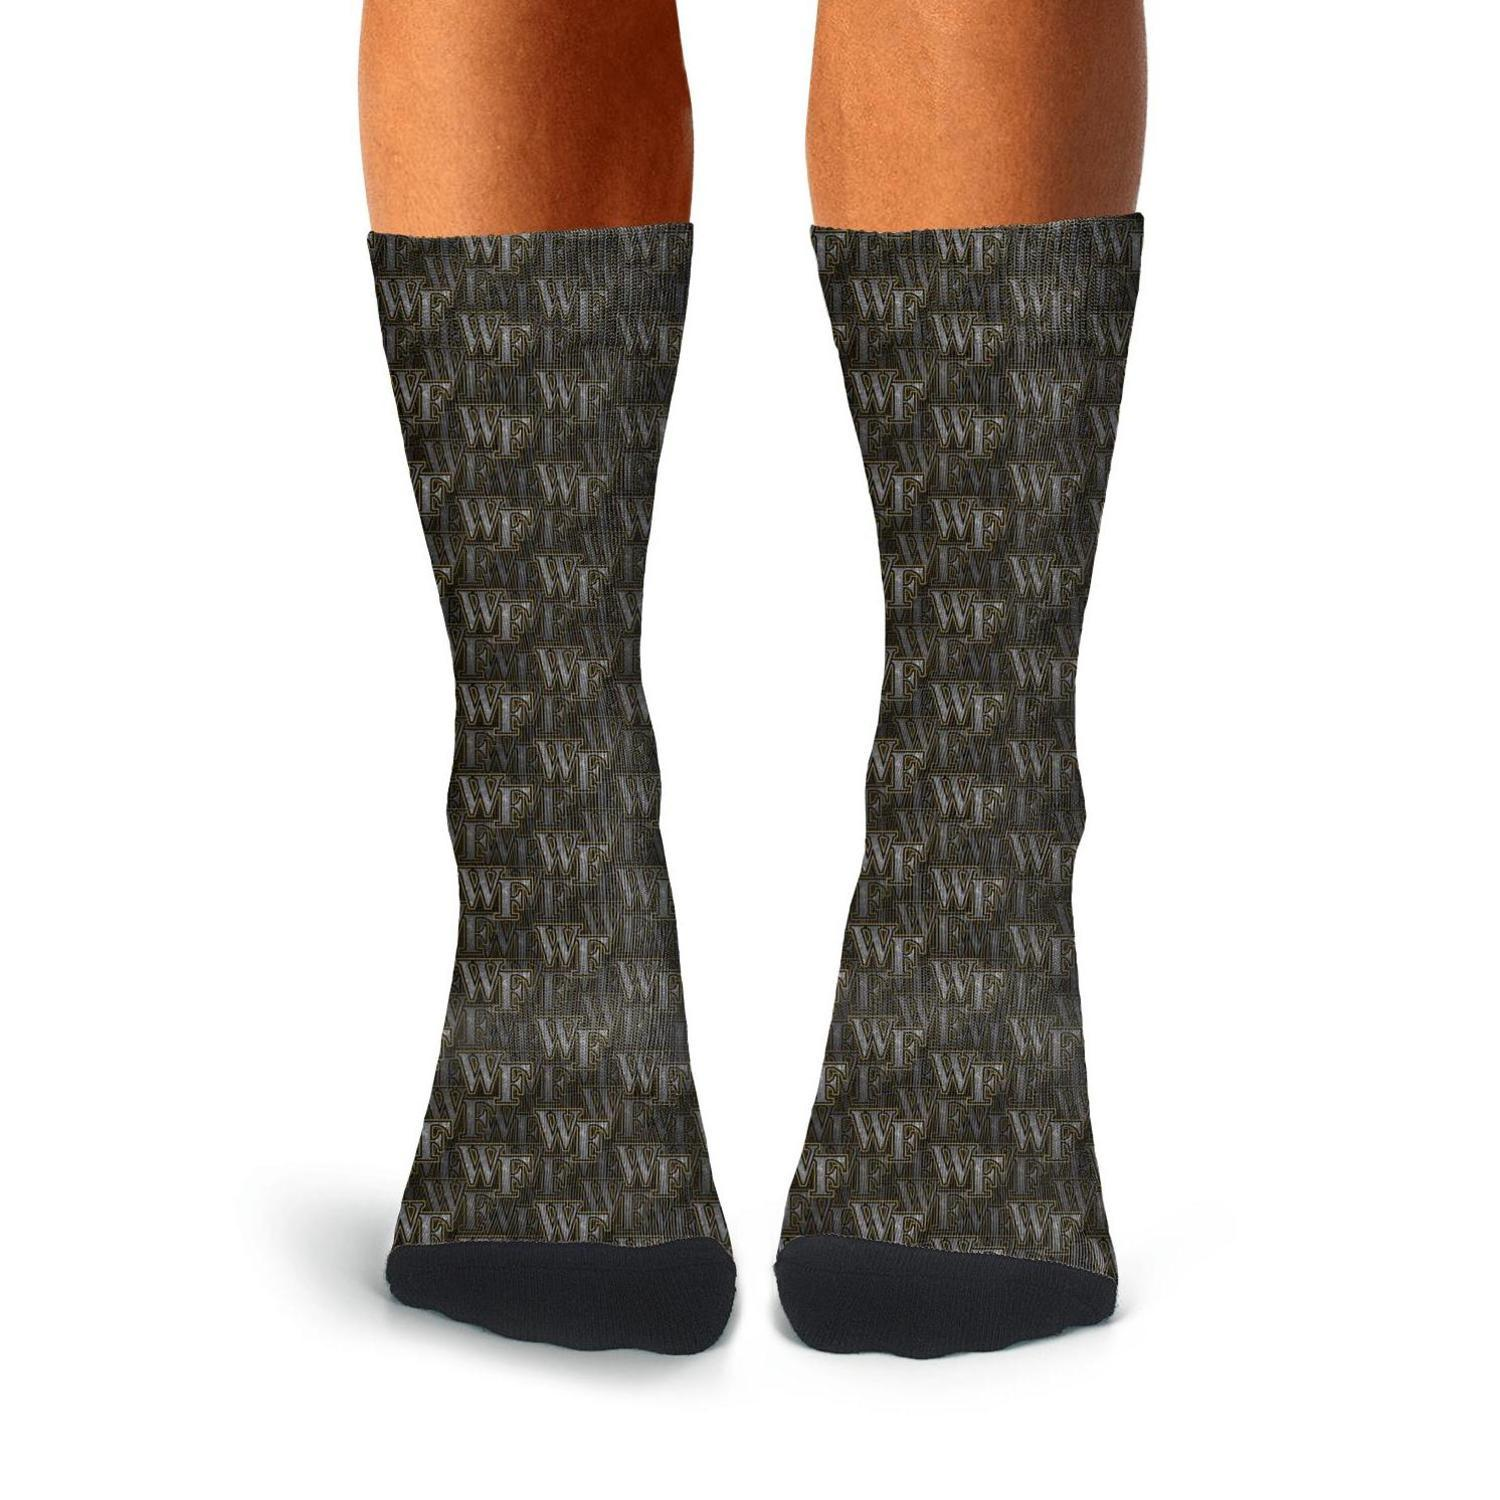 Man Wake Forest Demon Deacons basket noir Chaussettes Boot Fit Coton mince haute cheville Cozy Excellente Bulldogs stripe Gloden treillis canards